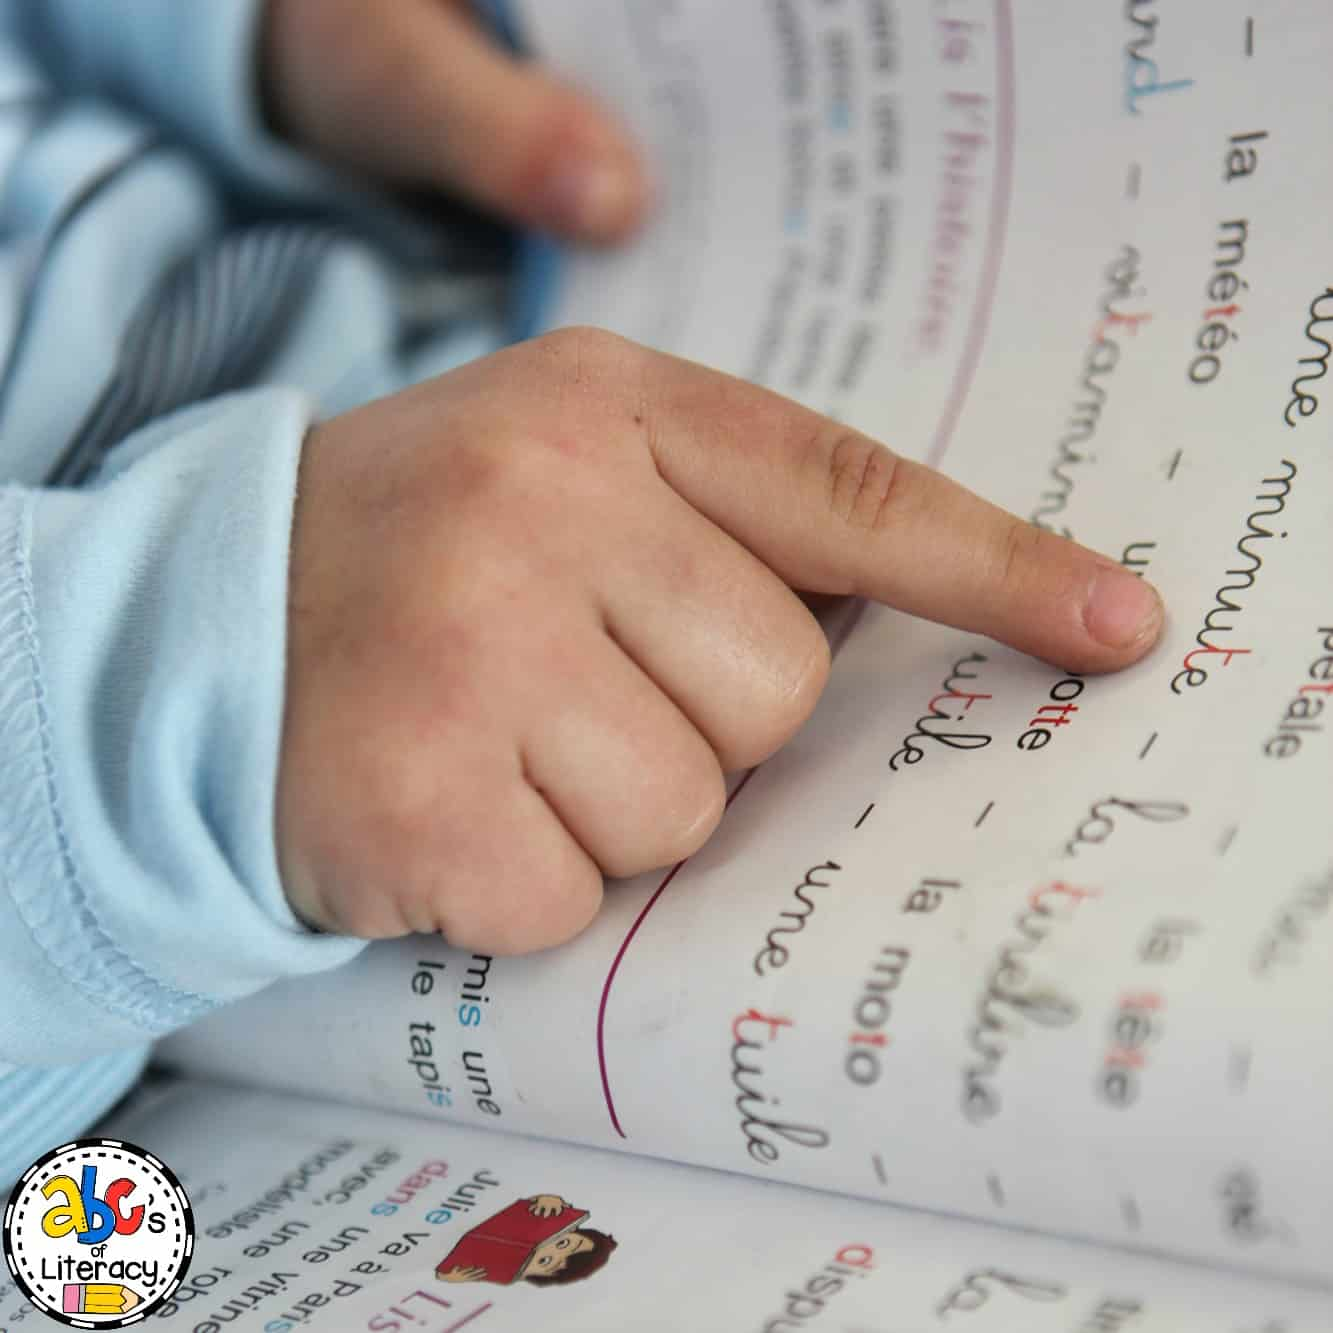 5 PreReading Skills Kids Need To Be Successful Readers